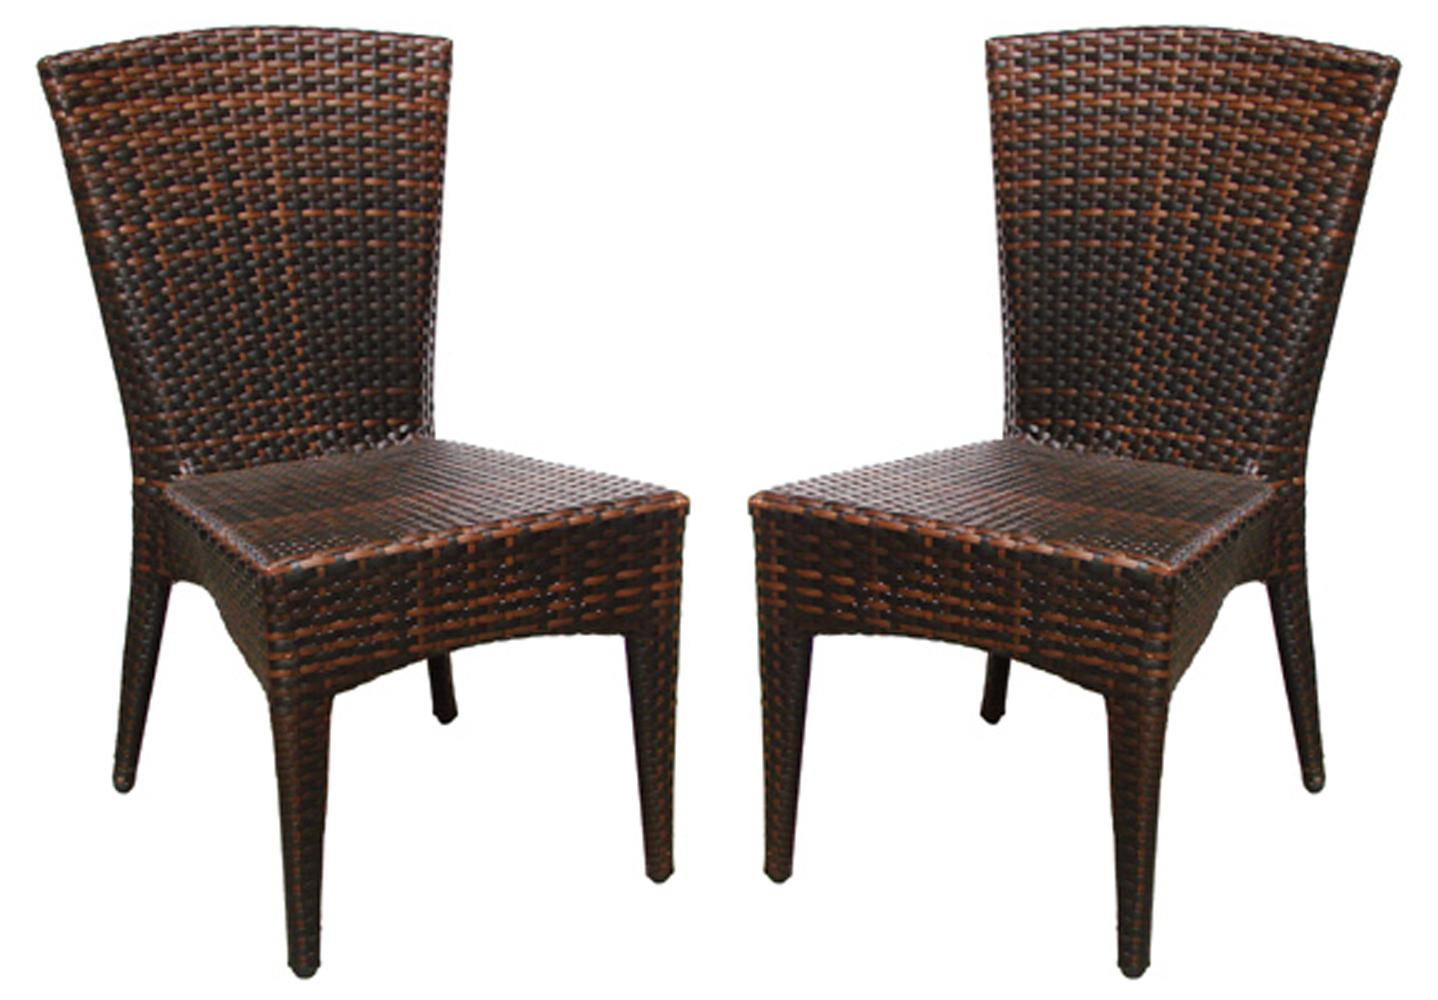 Safavieh Hamptons Shore Wicker Stackable Outdoor Chairs (Set of 2)